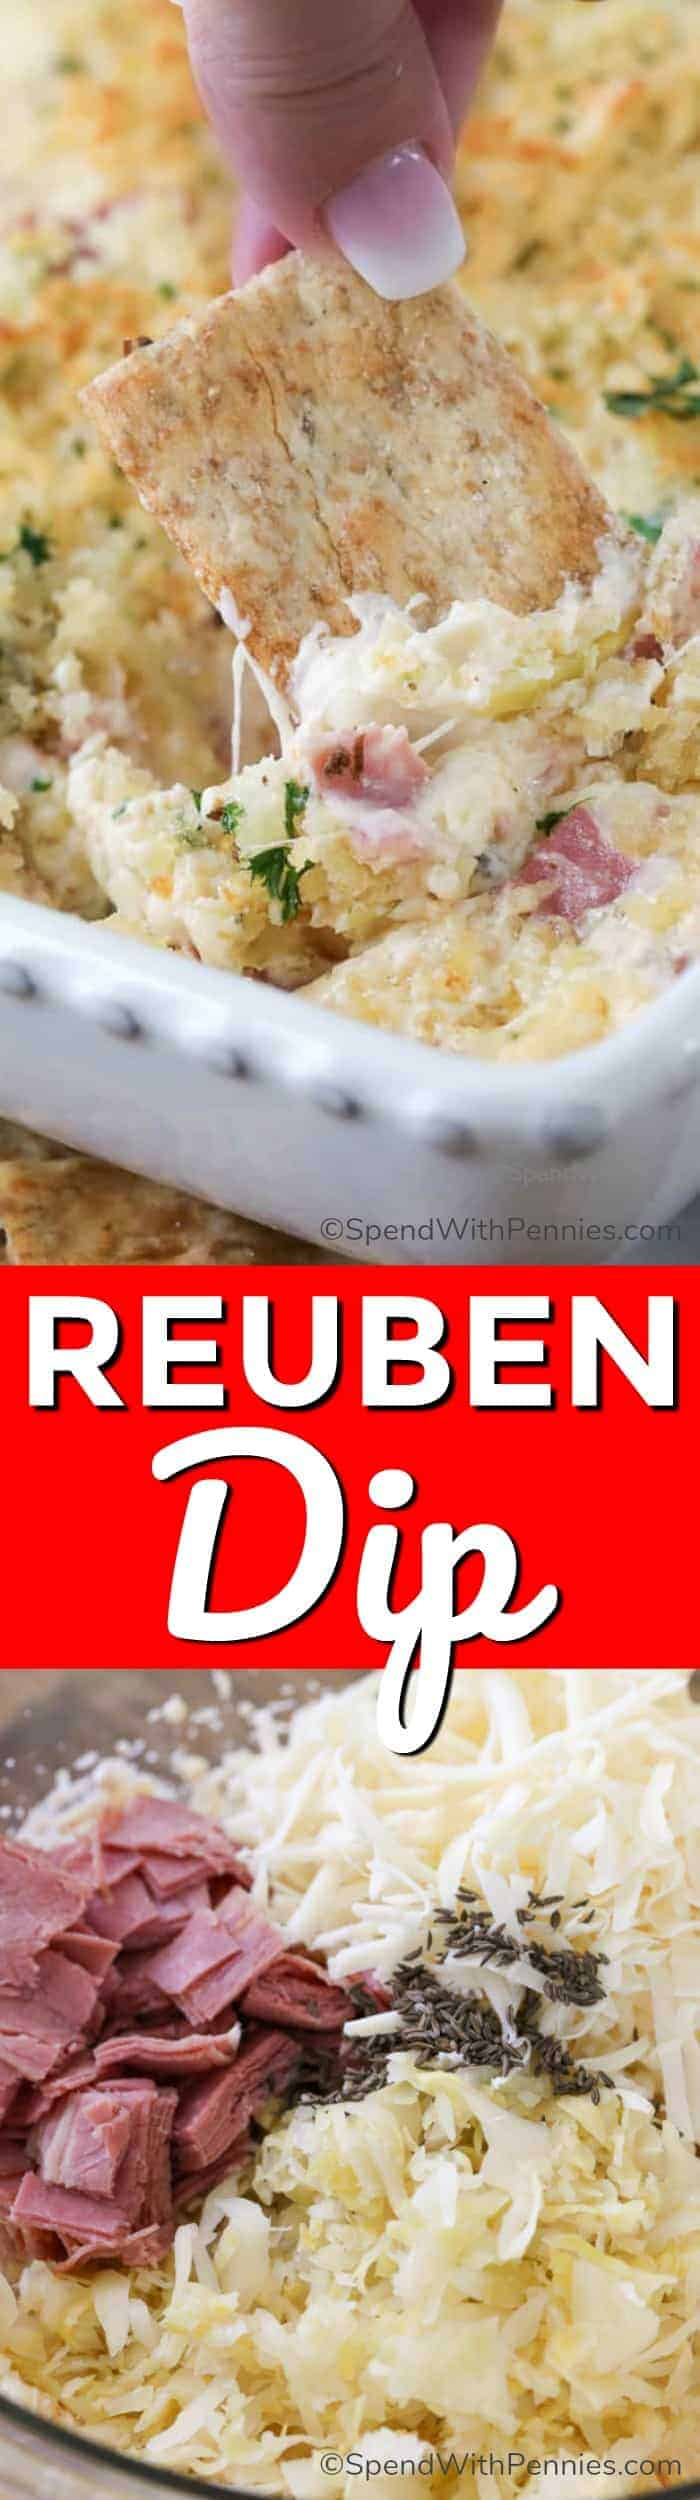 Reuben Dip ingredients and Reuben Dip in a casserole dish with a title